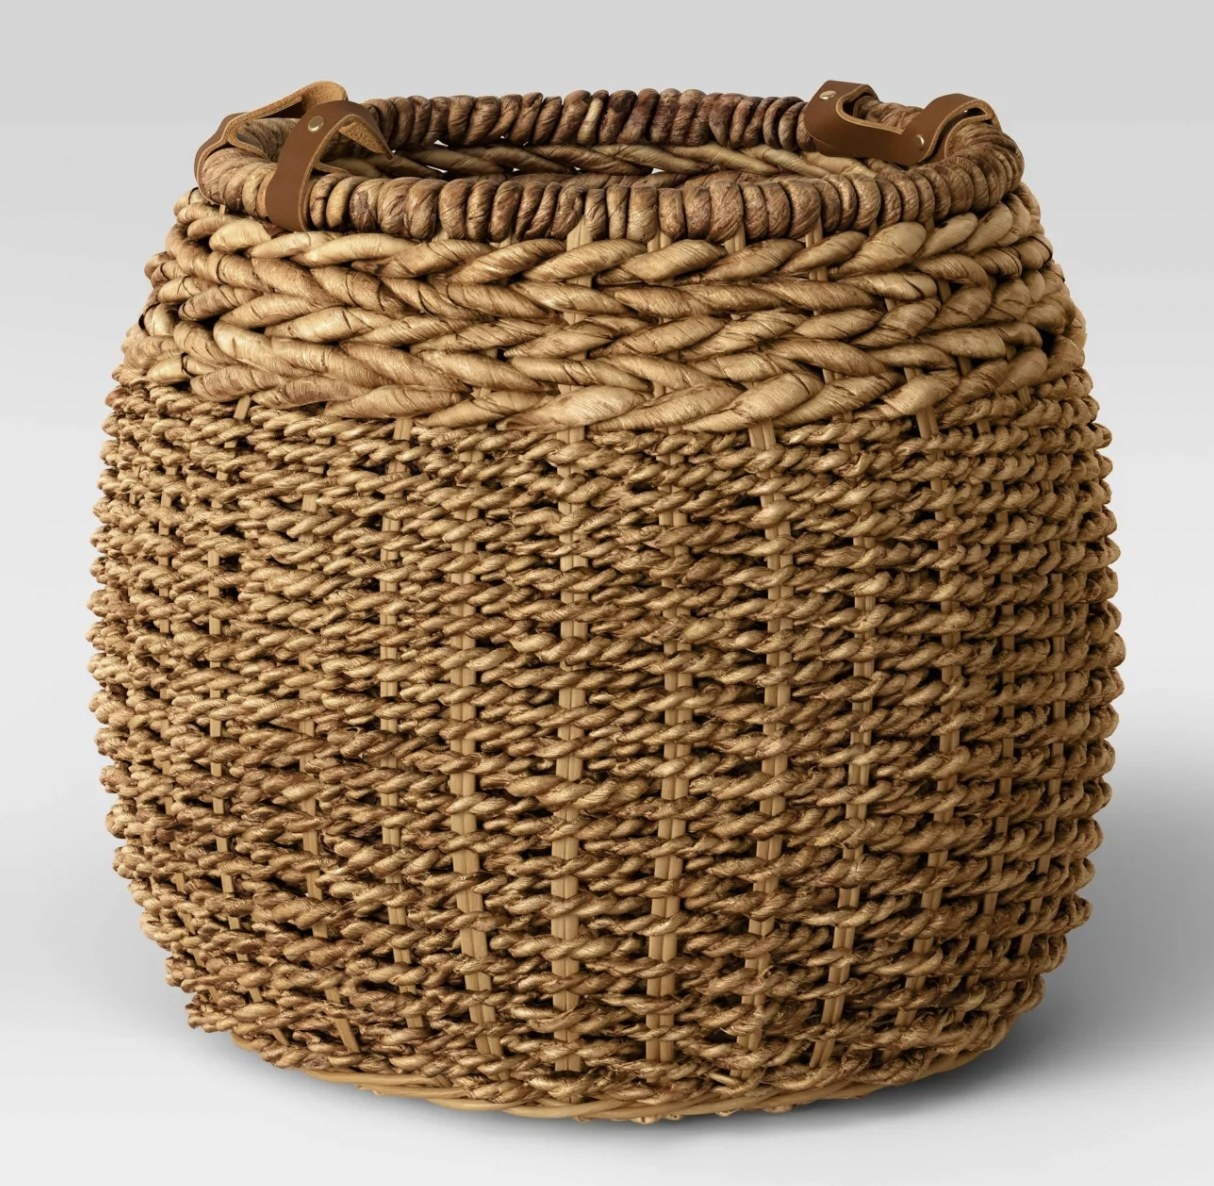 a wicker basket with leather handles